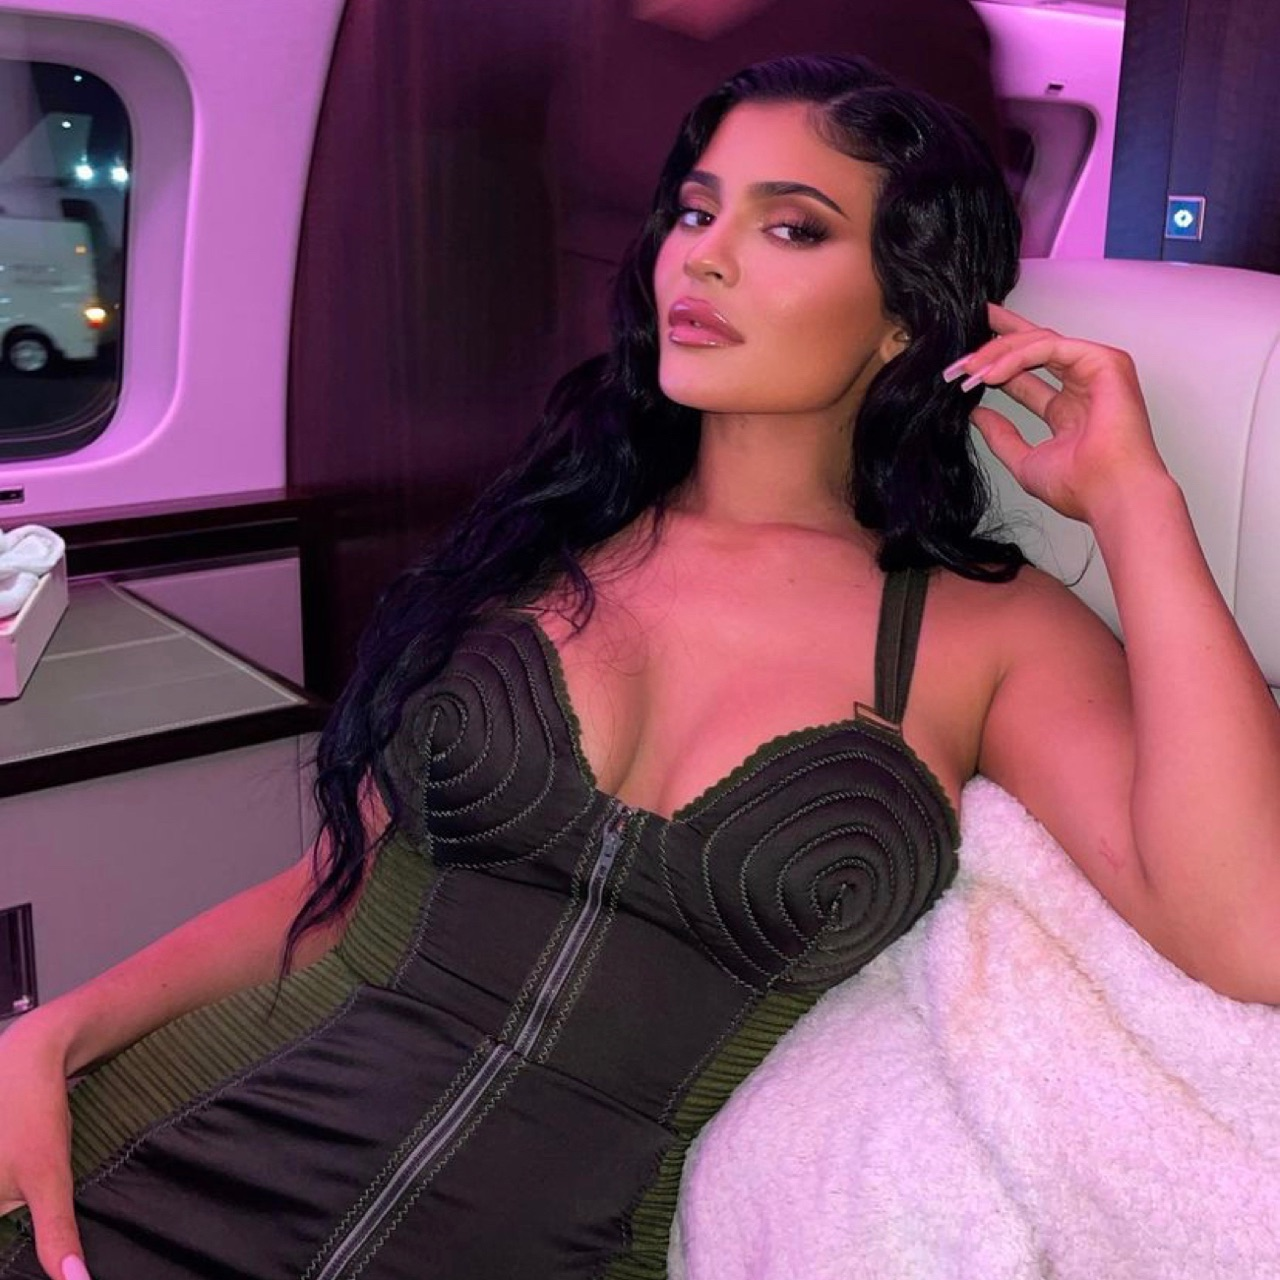 body and kylie jenner image